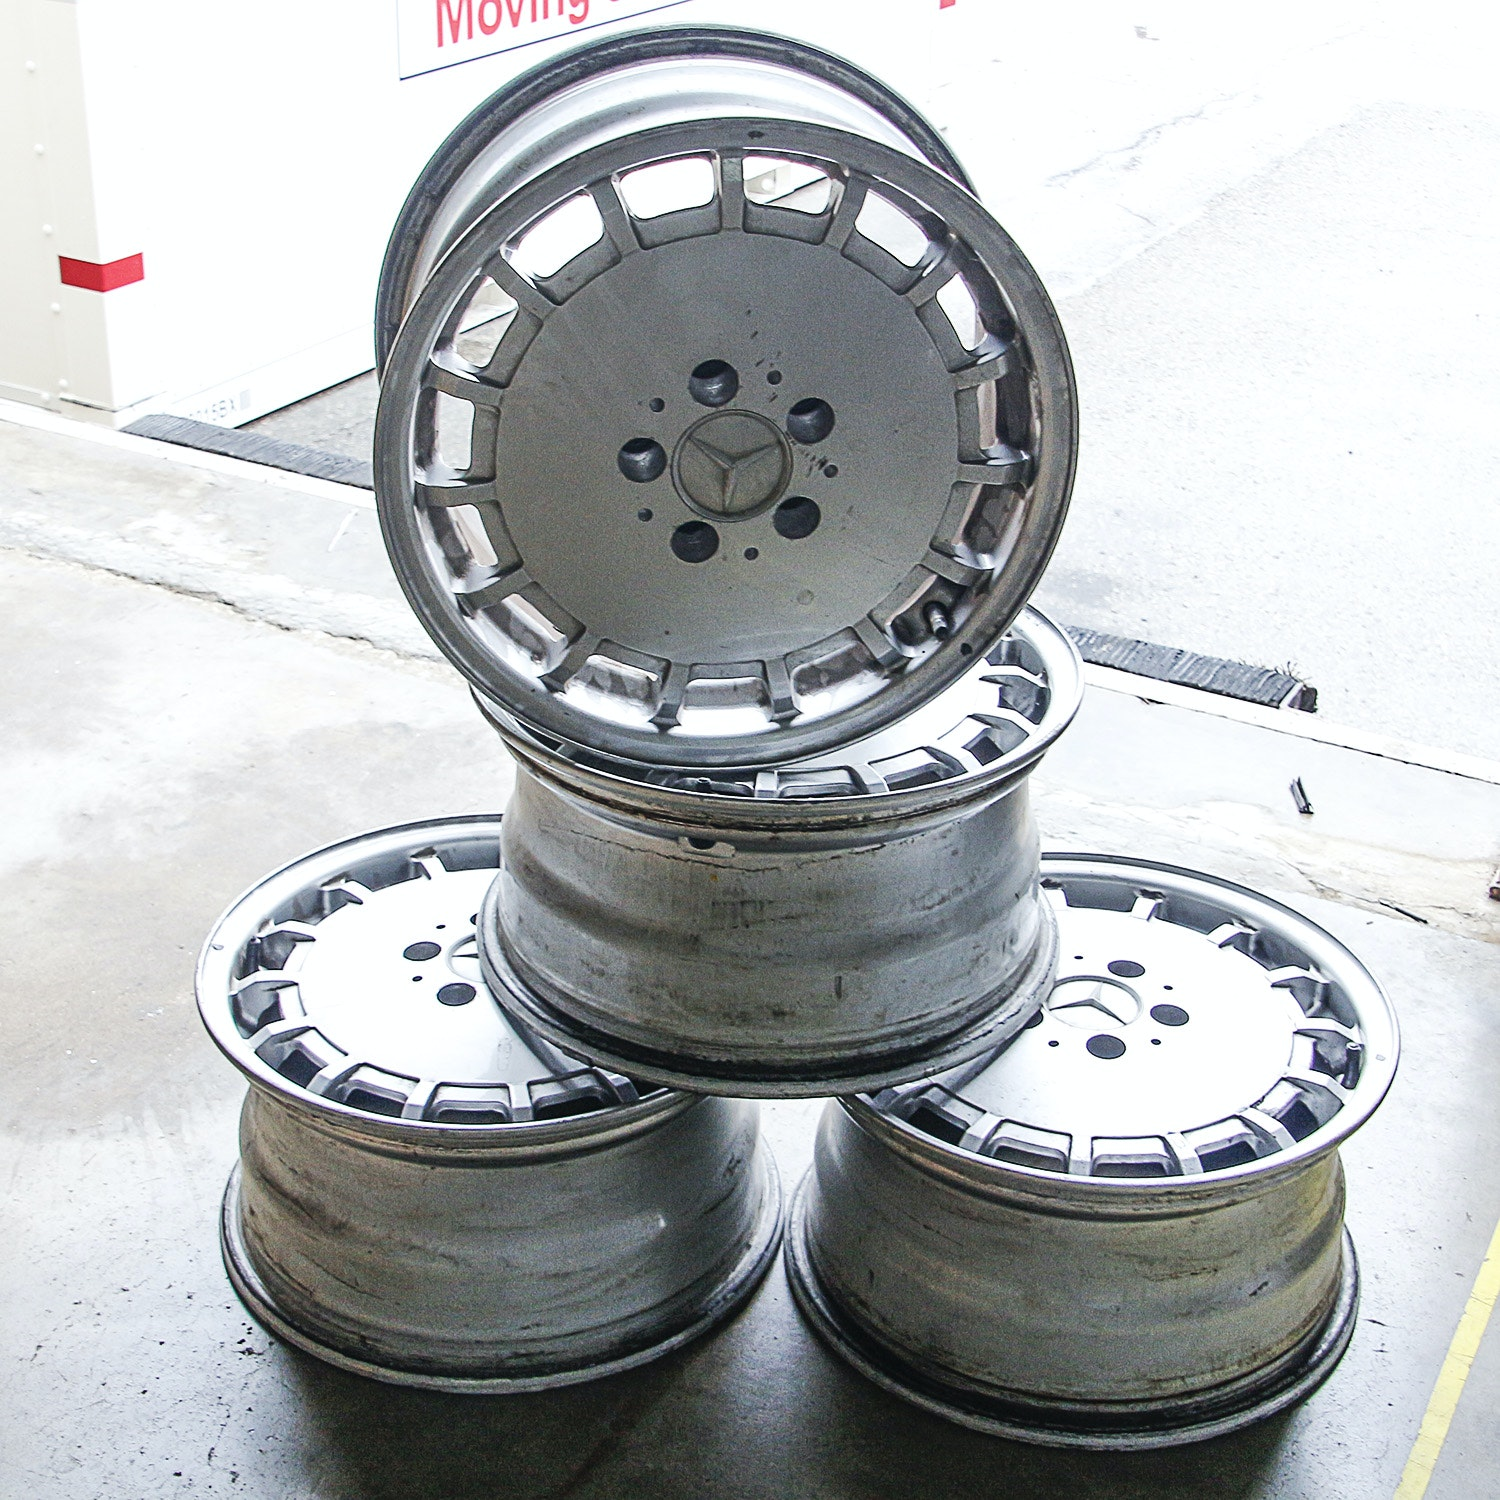 Mercedes-Benz Five-Lug Fifteen-Hole Alloy Rims